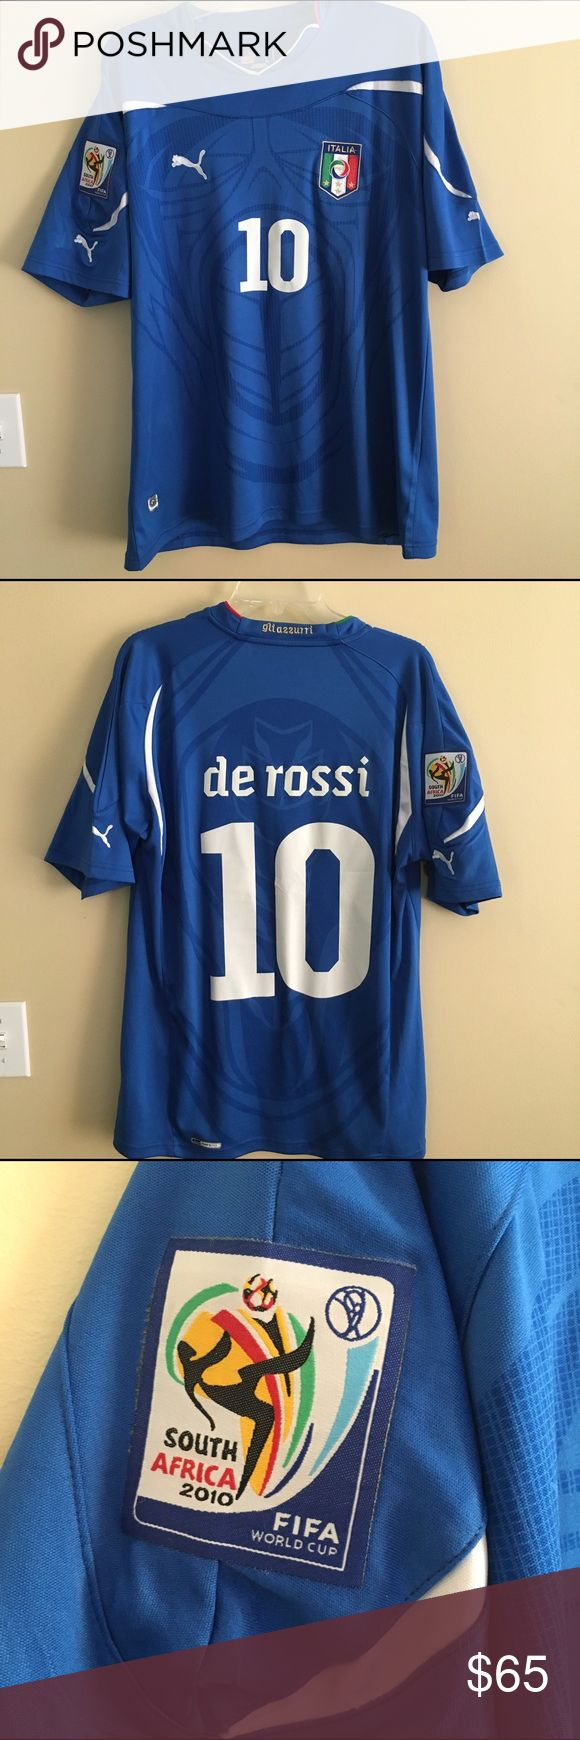 "NWOT Italia 2010 World Cup #10 De Rossi jersey, L NWOT Team Italia jersey from Puma, size Large. Embroidered logo patch on front ""ITALIA FIGC"" with 4 stars. Right sleeve has the FIFA South Africa 2010 World Cup patch, at shirt bottom is the hologram patch indicating authenticity. Embroidered ""gli azzurri"" (""the blue"") on back neckband. Back states ""de rossi #10"" for Daniele De Rossi of the Italian national soccer team. Never been worn. Beautiful shirt for either collector or player. 100%…"